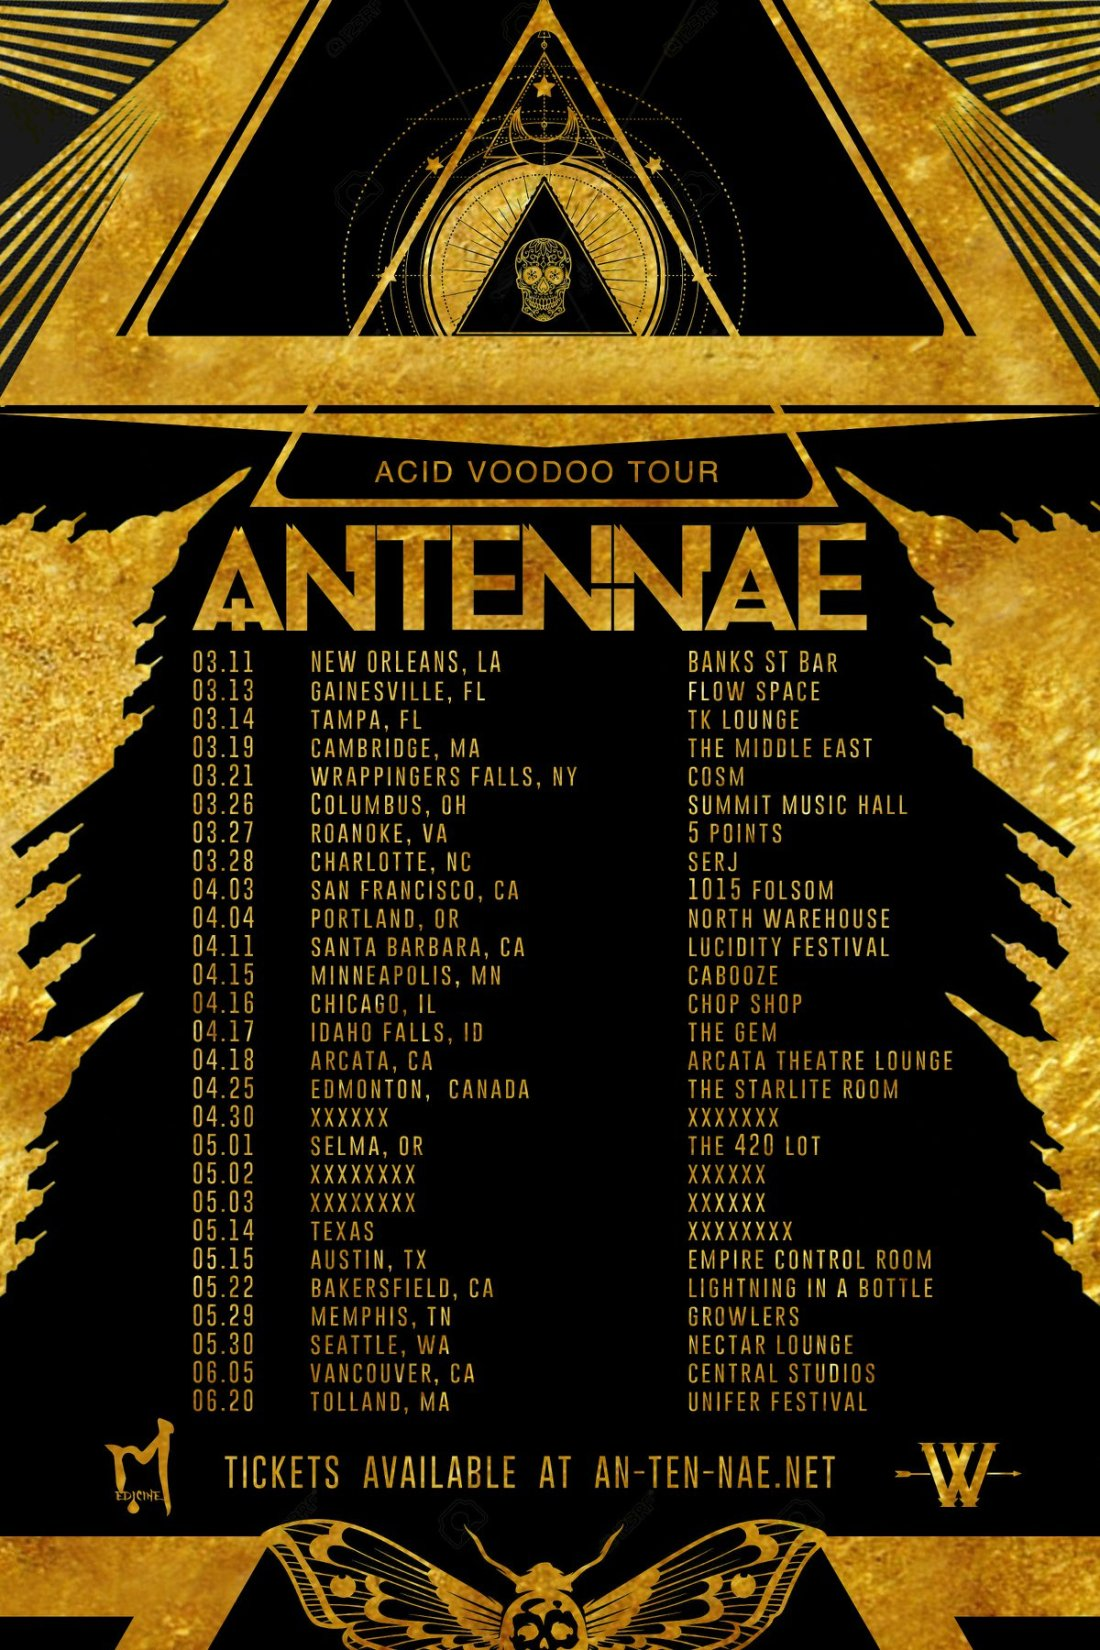 an-ten-nae-acid-voodoo-tour-conscious-electronic-artworks